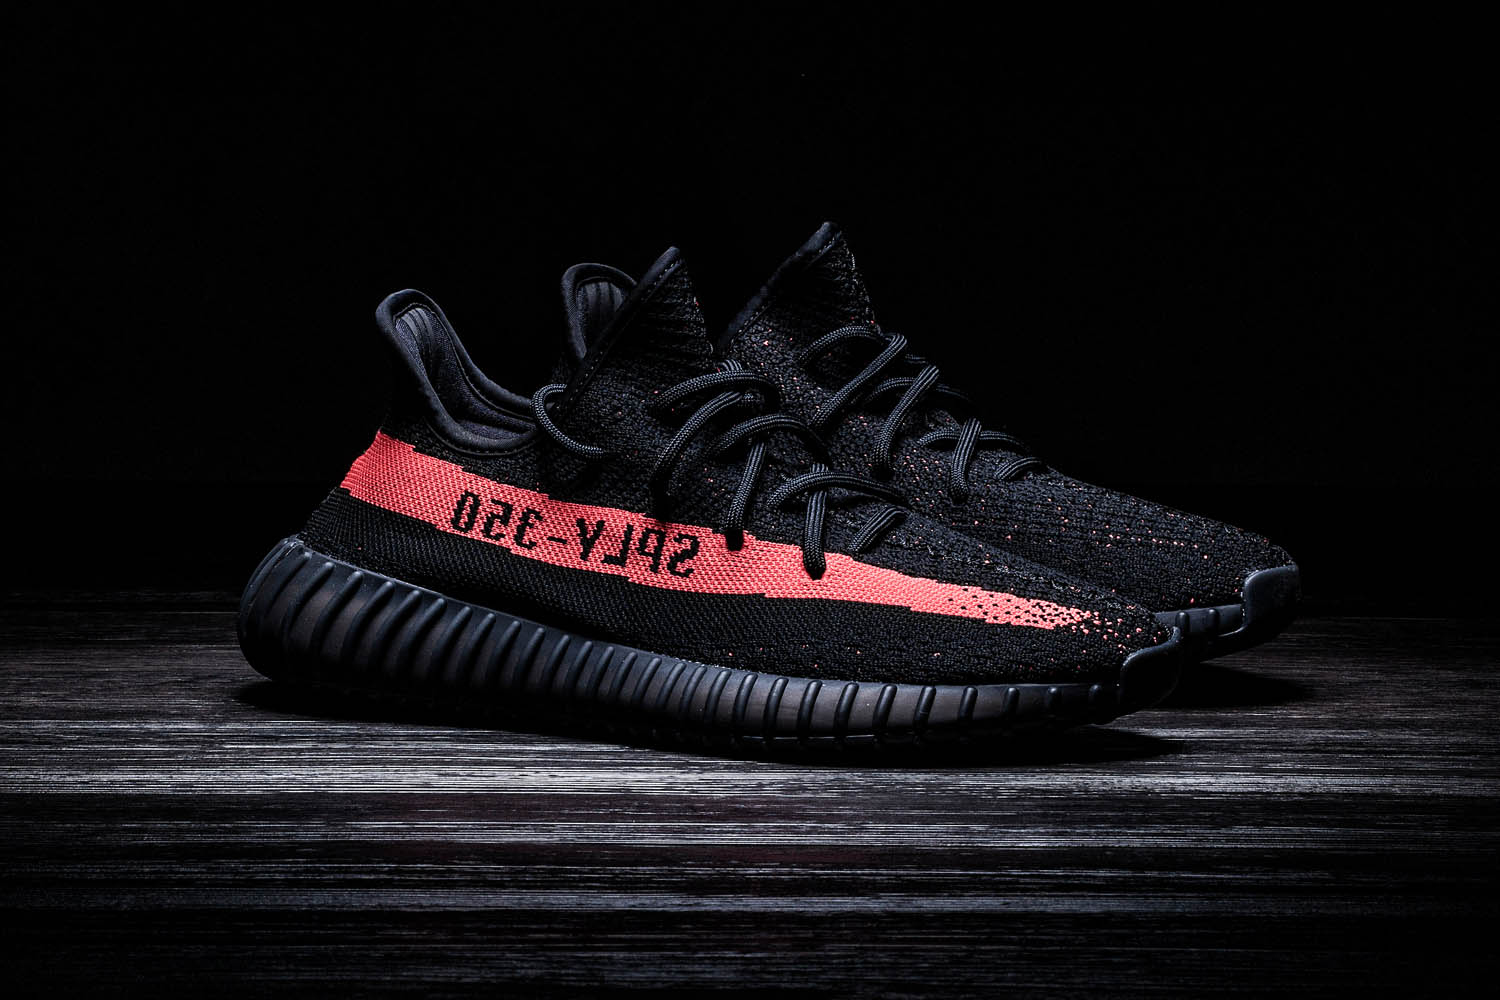 675ecd3c28d17 Adidas Yeezy 350 V2 Gucci custom edition Shoes for sale in Bandar